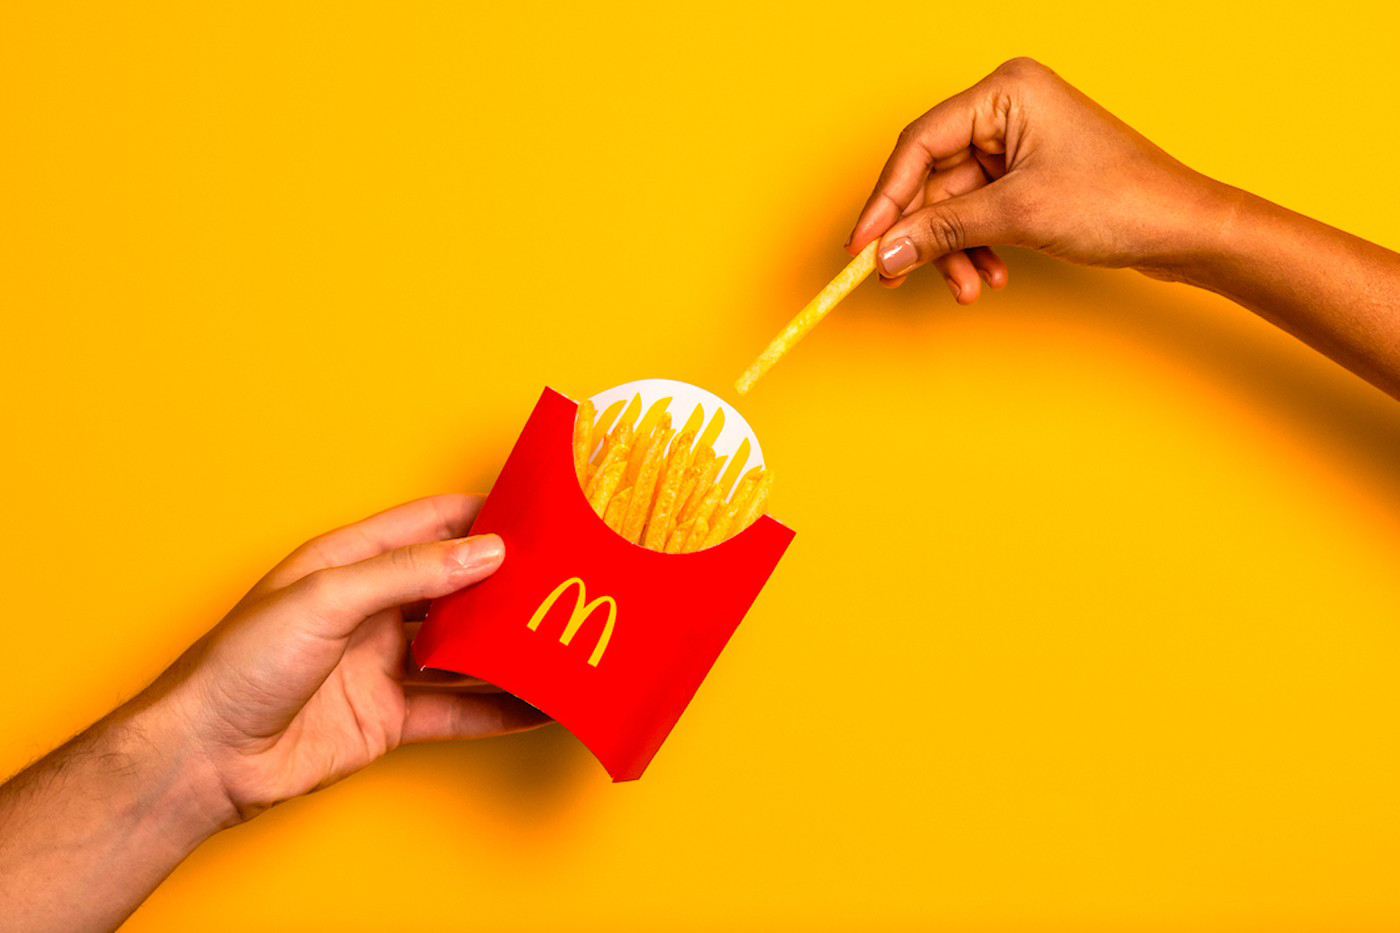 mcdonalds redesign rebranding packaging containers 01